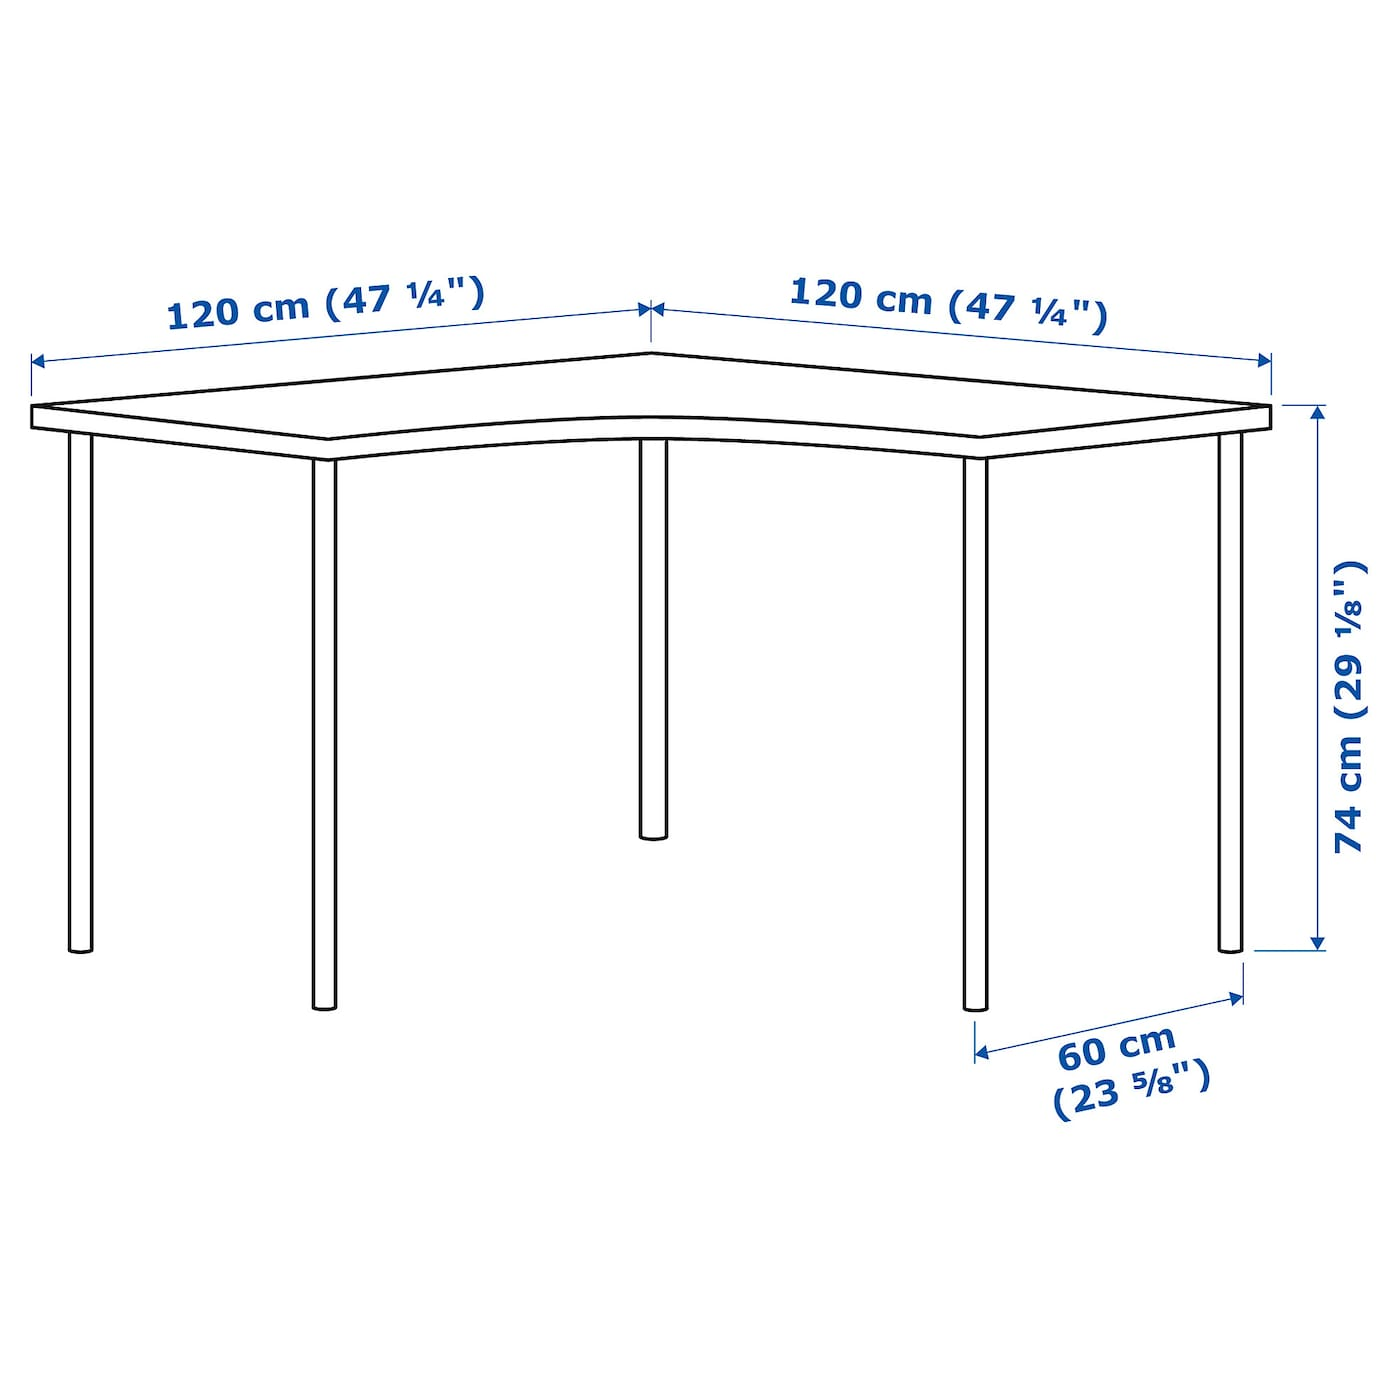 IKEA ADILS/LINNMON corner table Pre-drilled holes for five legs, for easy assembly.